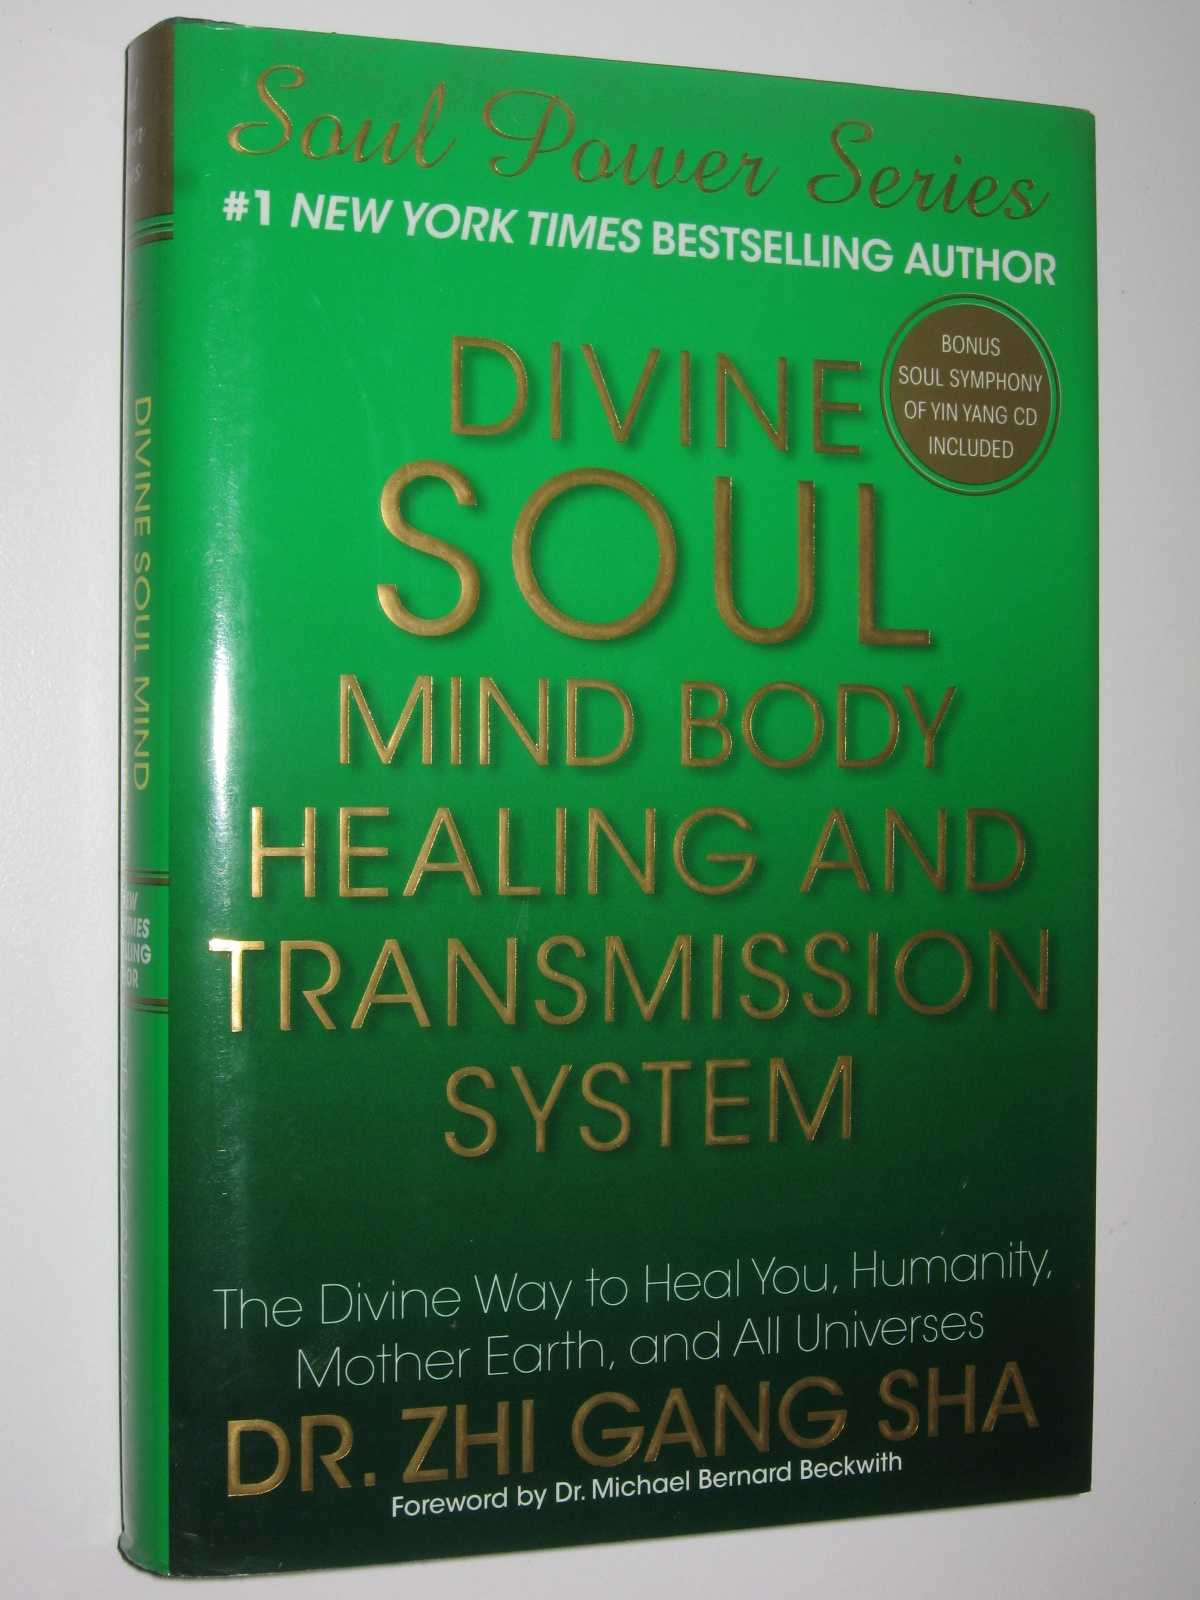 Image for Divine Soul Mind Body Healing and Transmission System : The Divine Way to Heal You, Humanity, Mother Earth, and All Universes